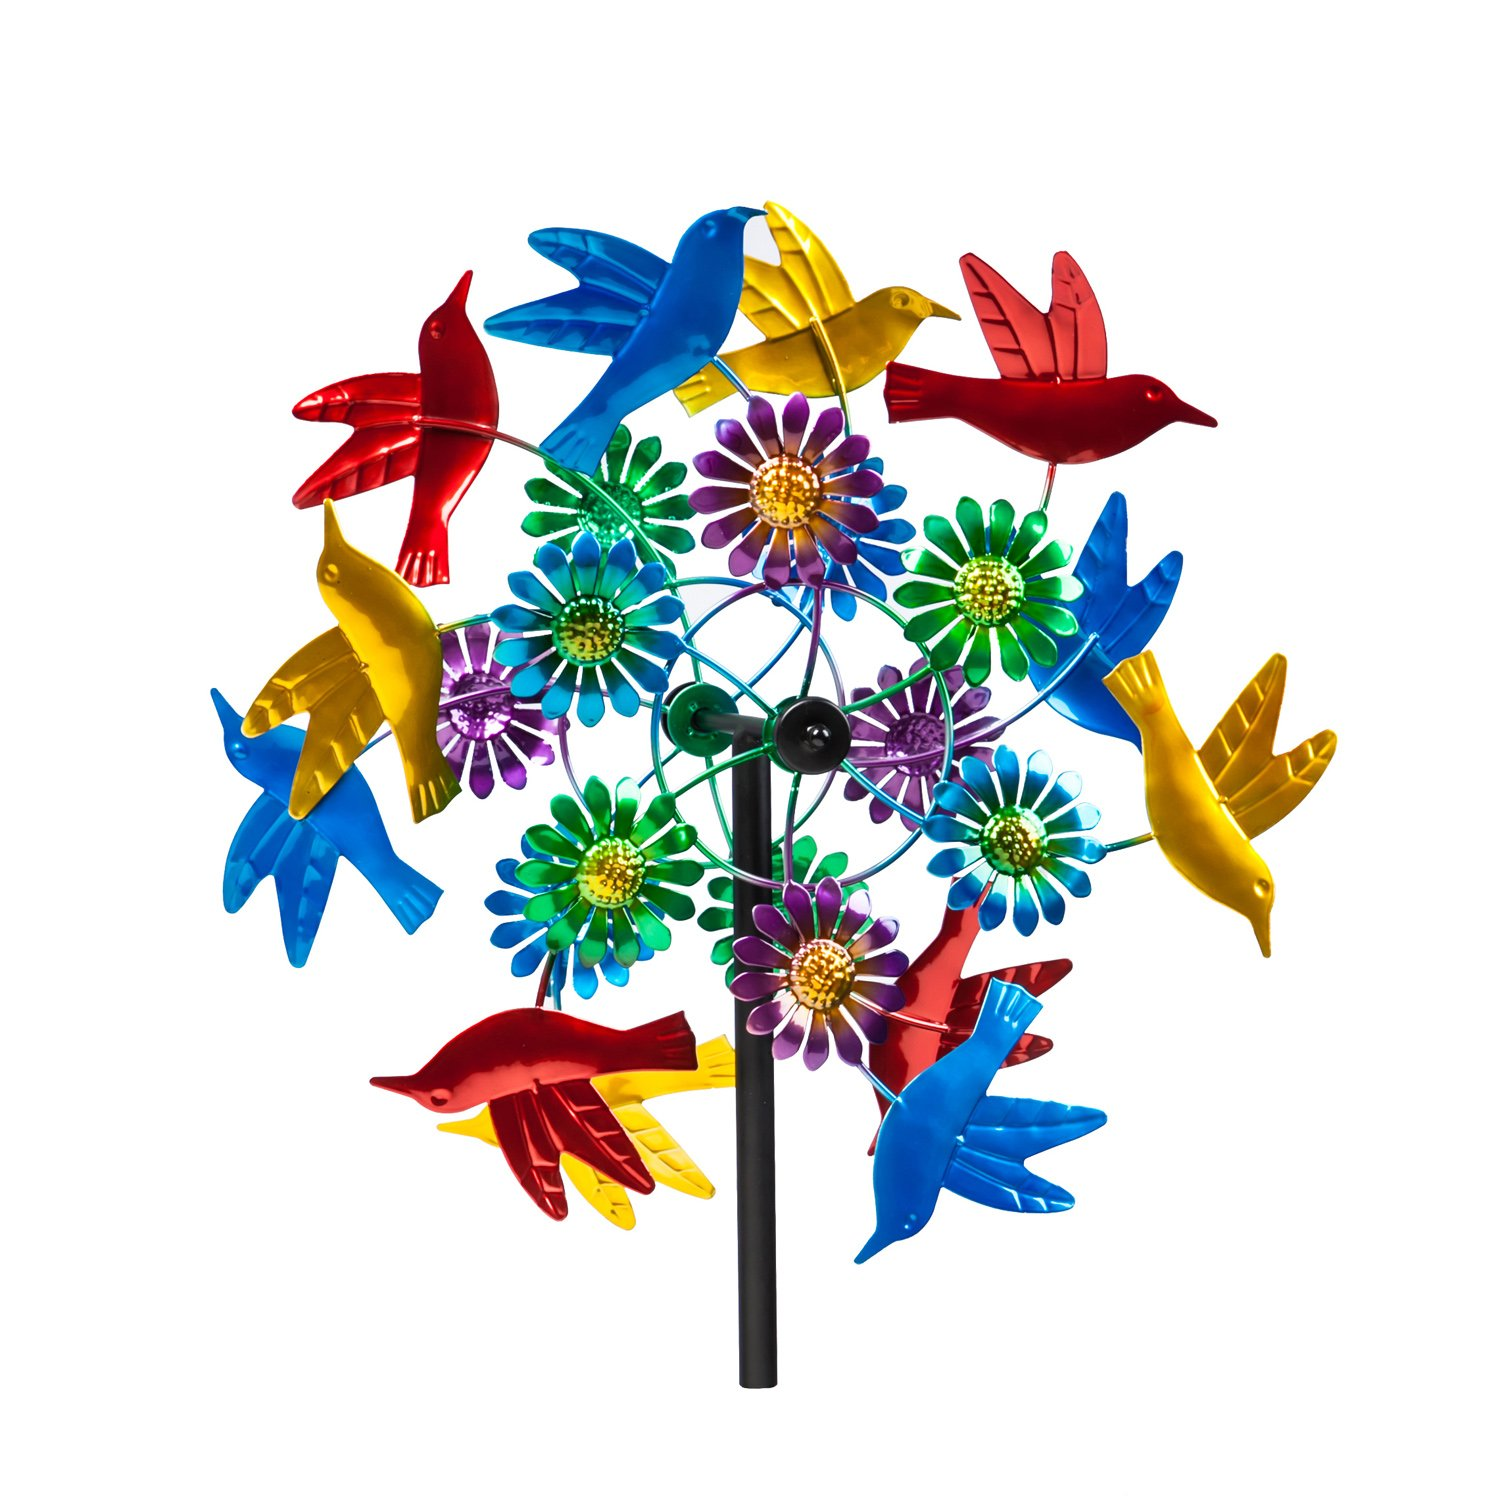 Evergreen Birds in Flight Outdoor Safe Kinetic Wind Spinning Topper - Pole Sold Separately